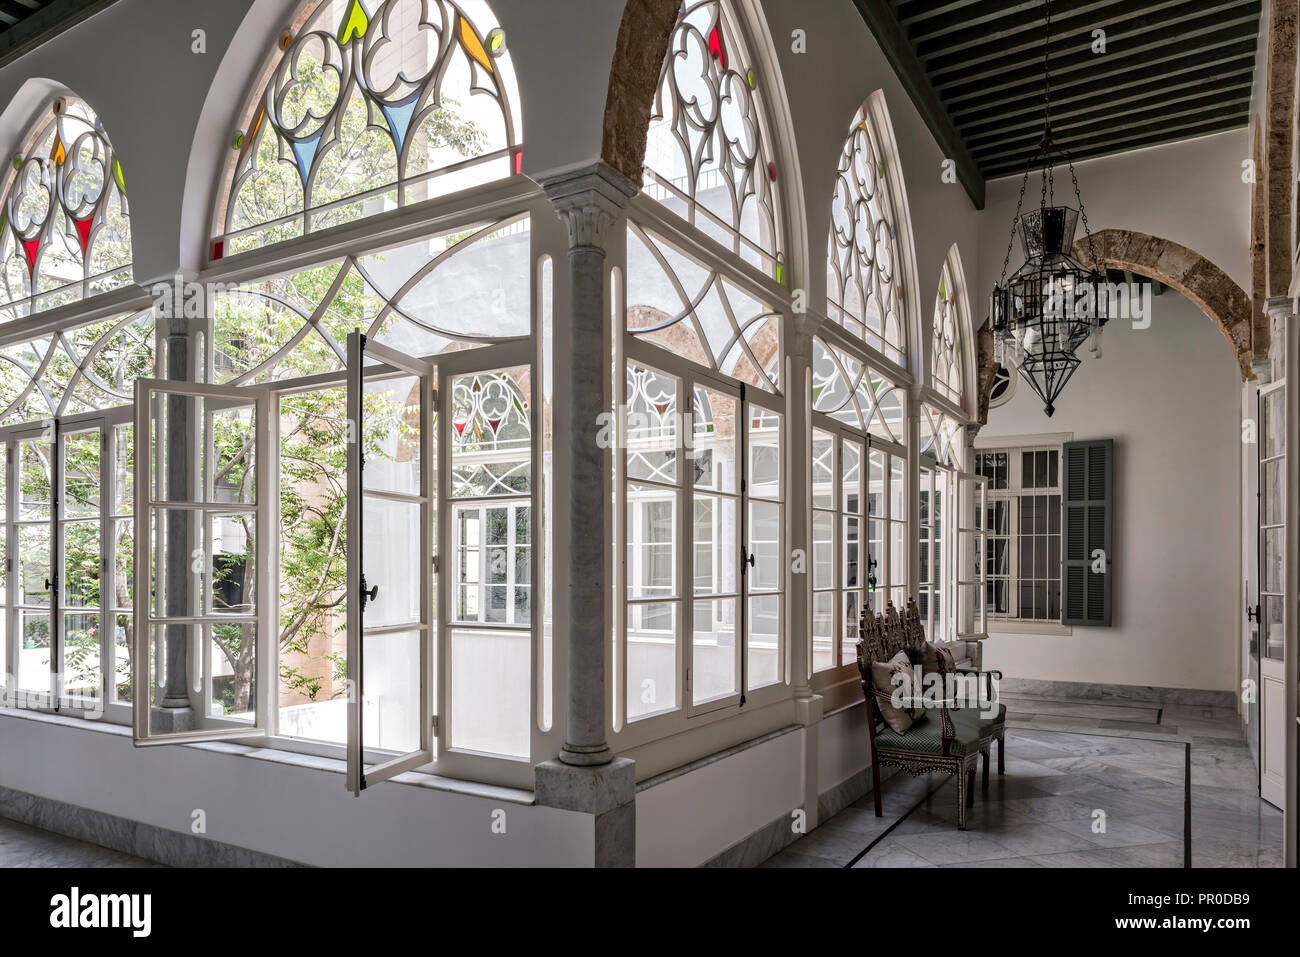 Nine glazed arches form gallery above courtyard. - Stock Image